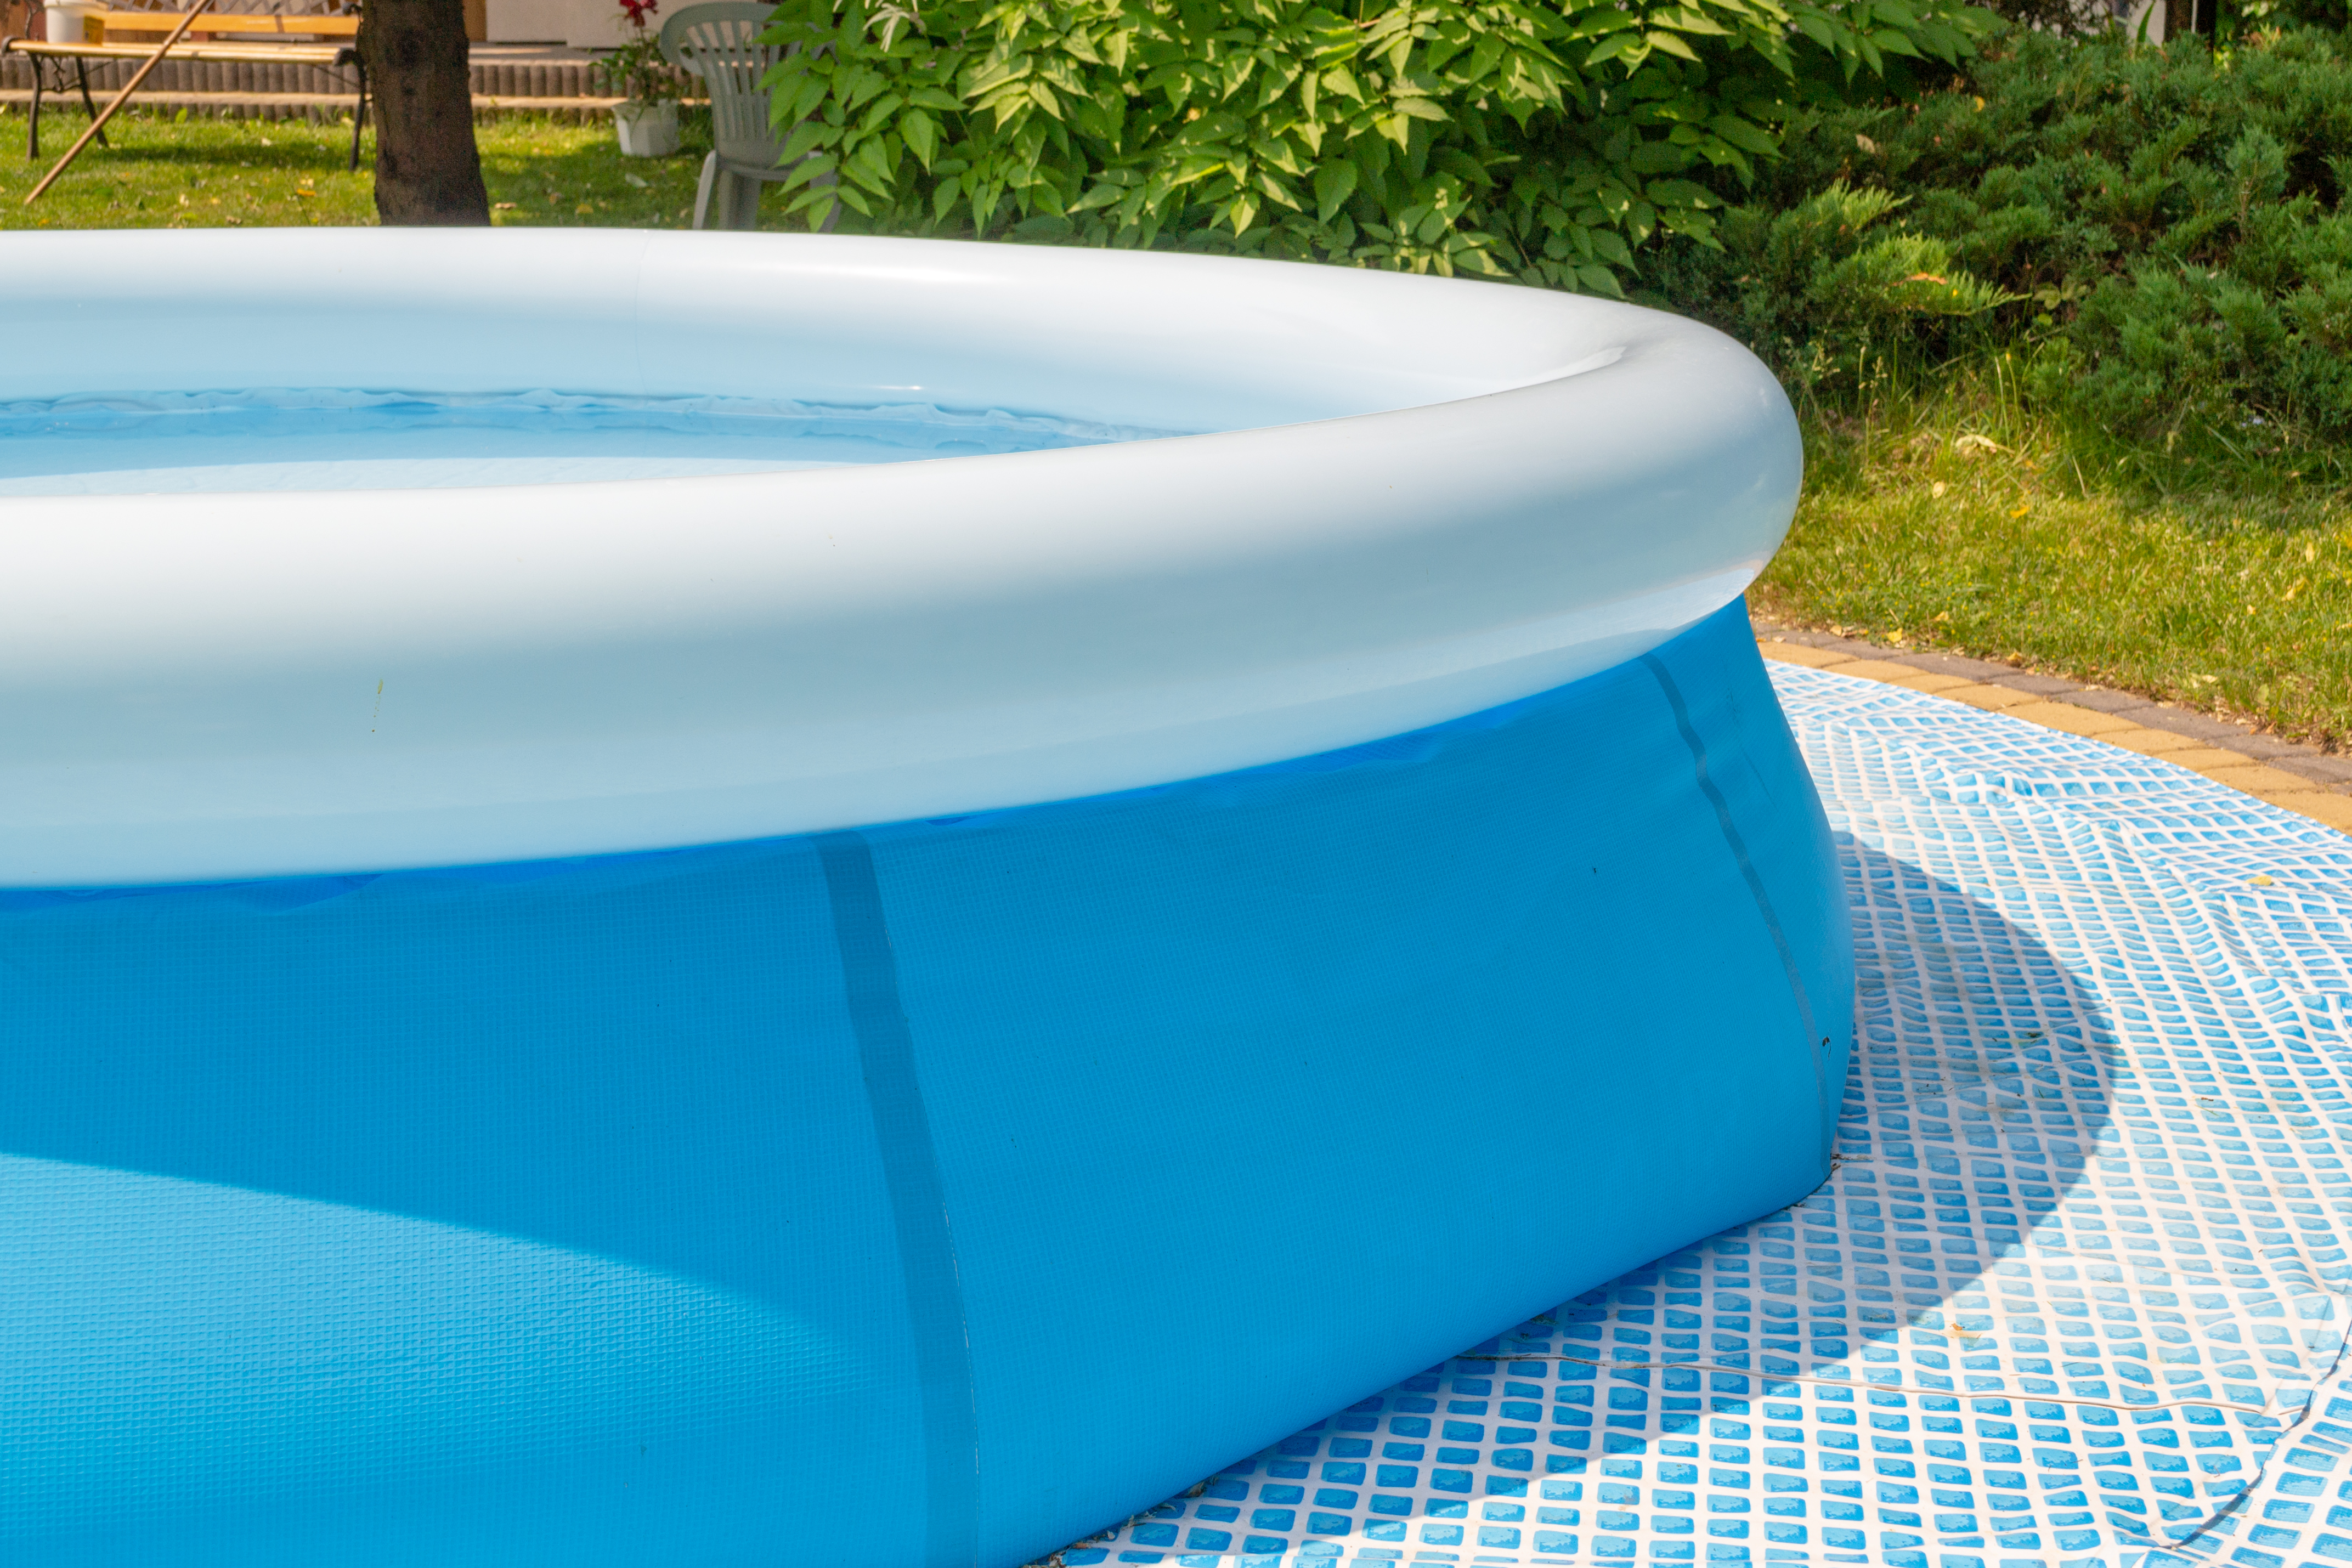 How to Fill the Top Ring in an Intex Pool | Home Guides | SF ...